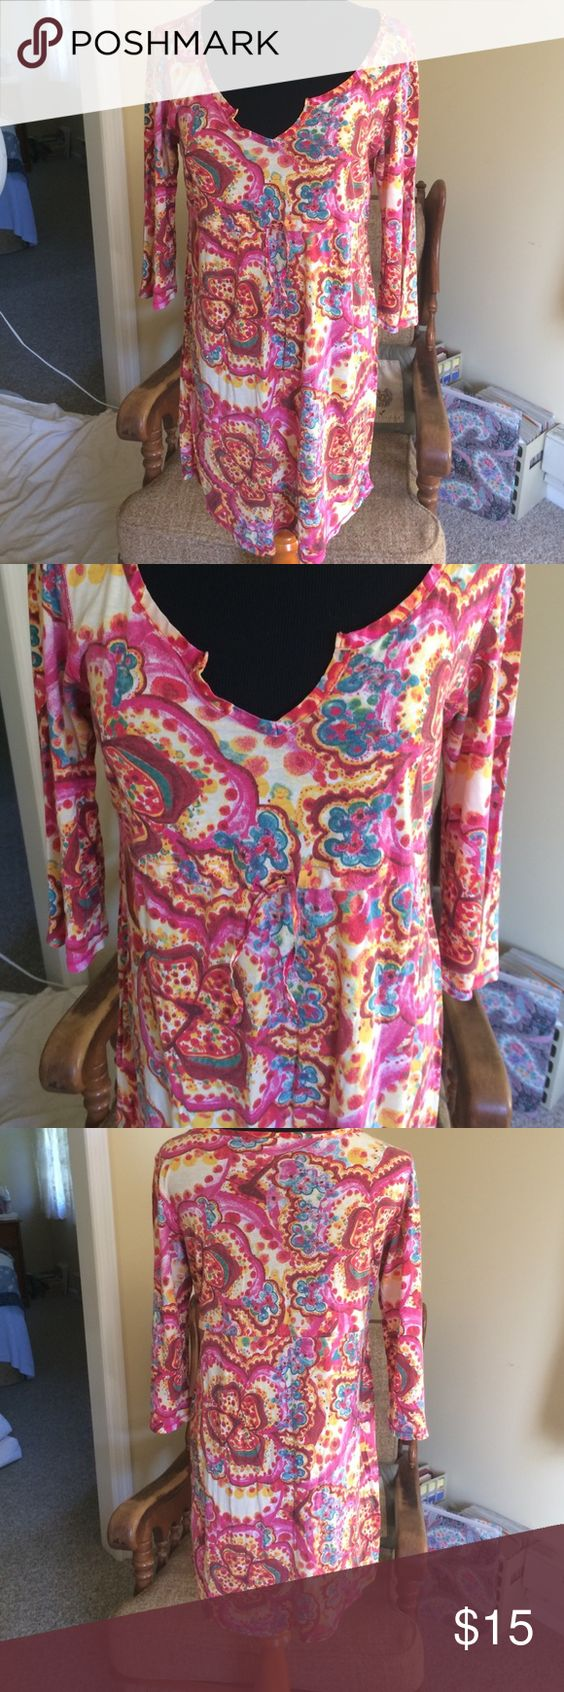 Lucky Brand tunic Beautiful colors - teal, cream, pink, yellow, and red.  Great shape and so lovely.  The empire waist has a drawstring for a great fit. Lucky Brand Tops Tunics